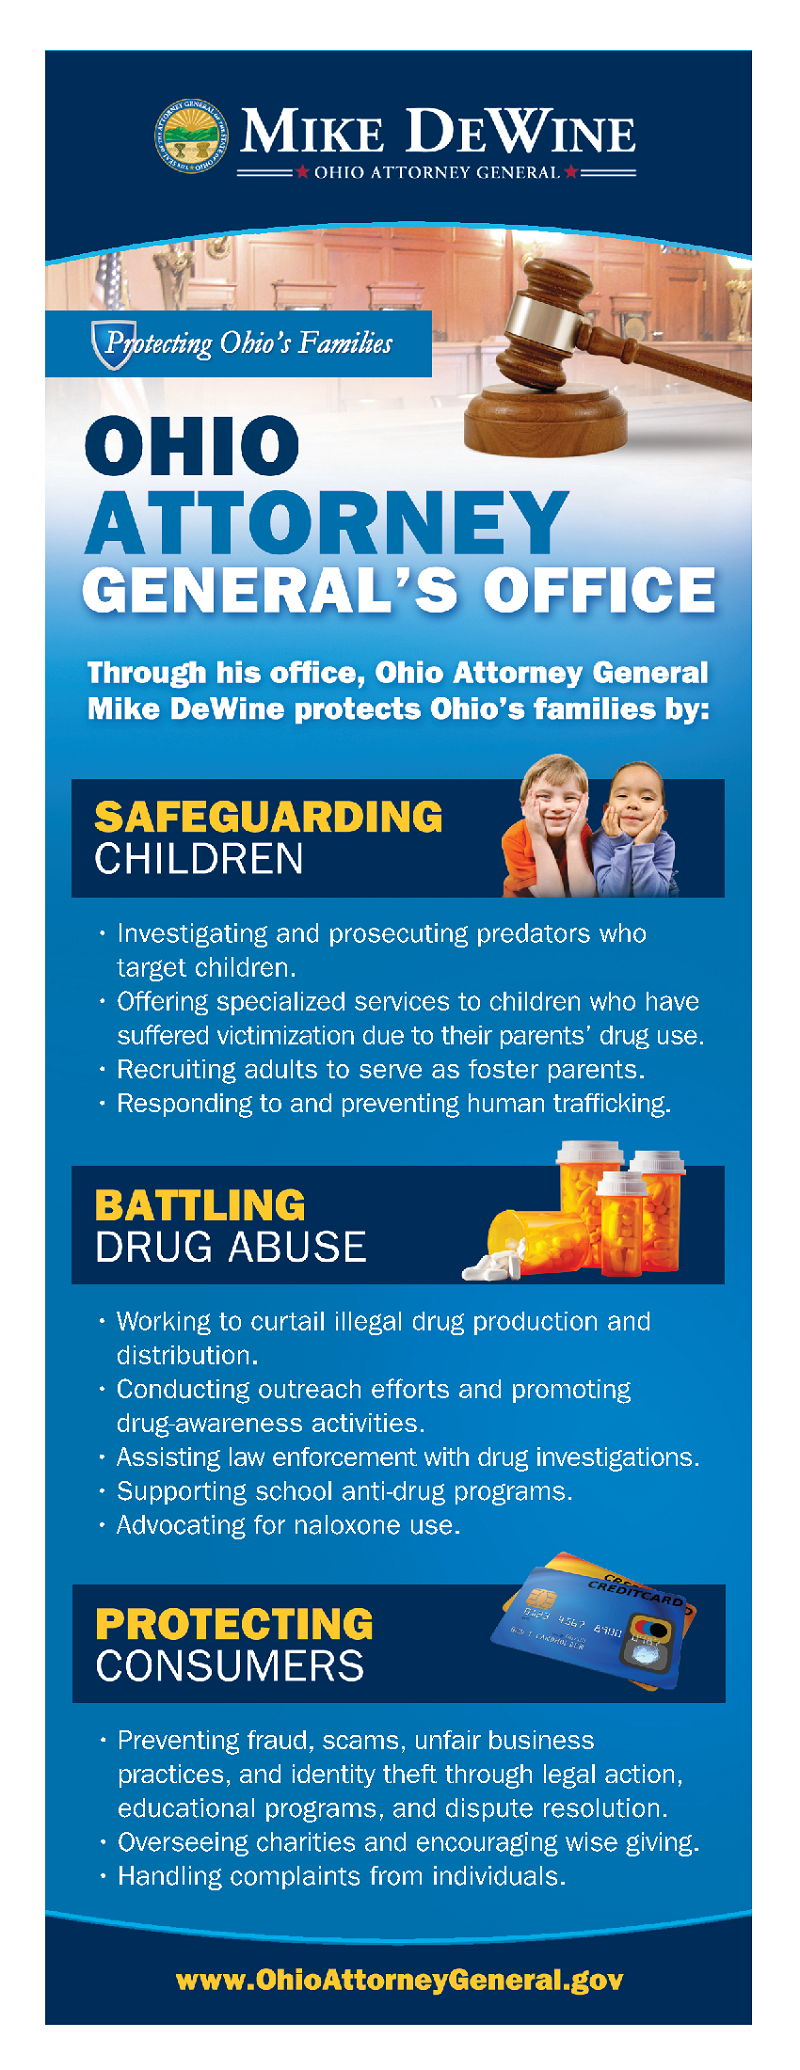 Image Office of Attorney General Ohio